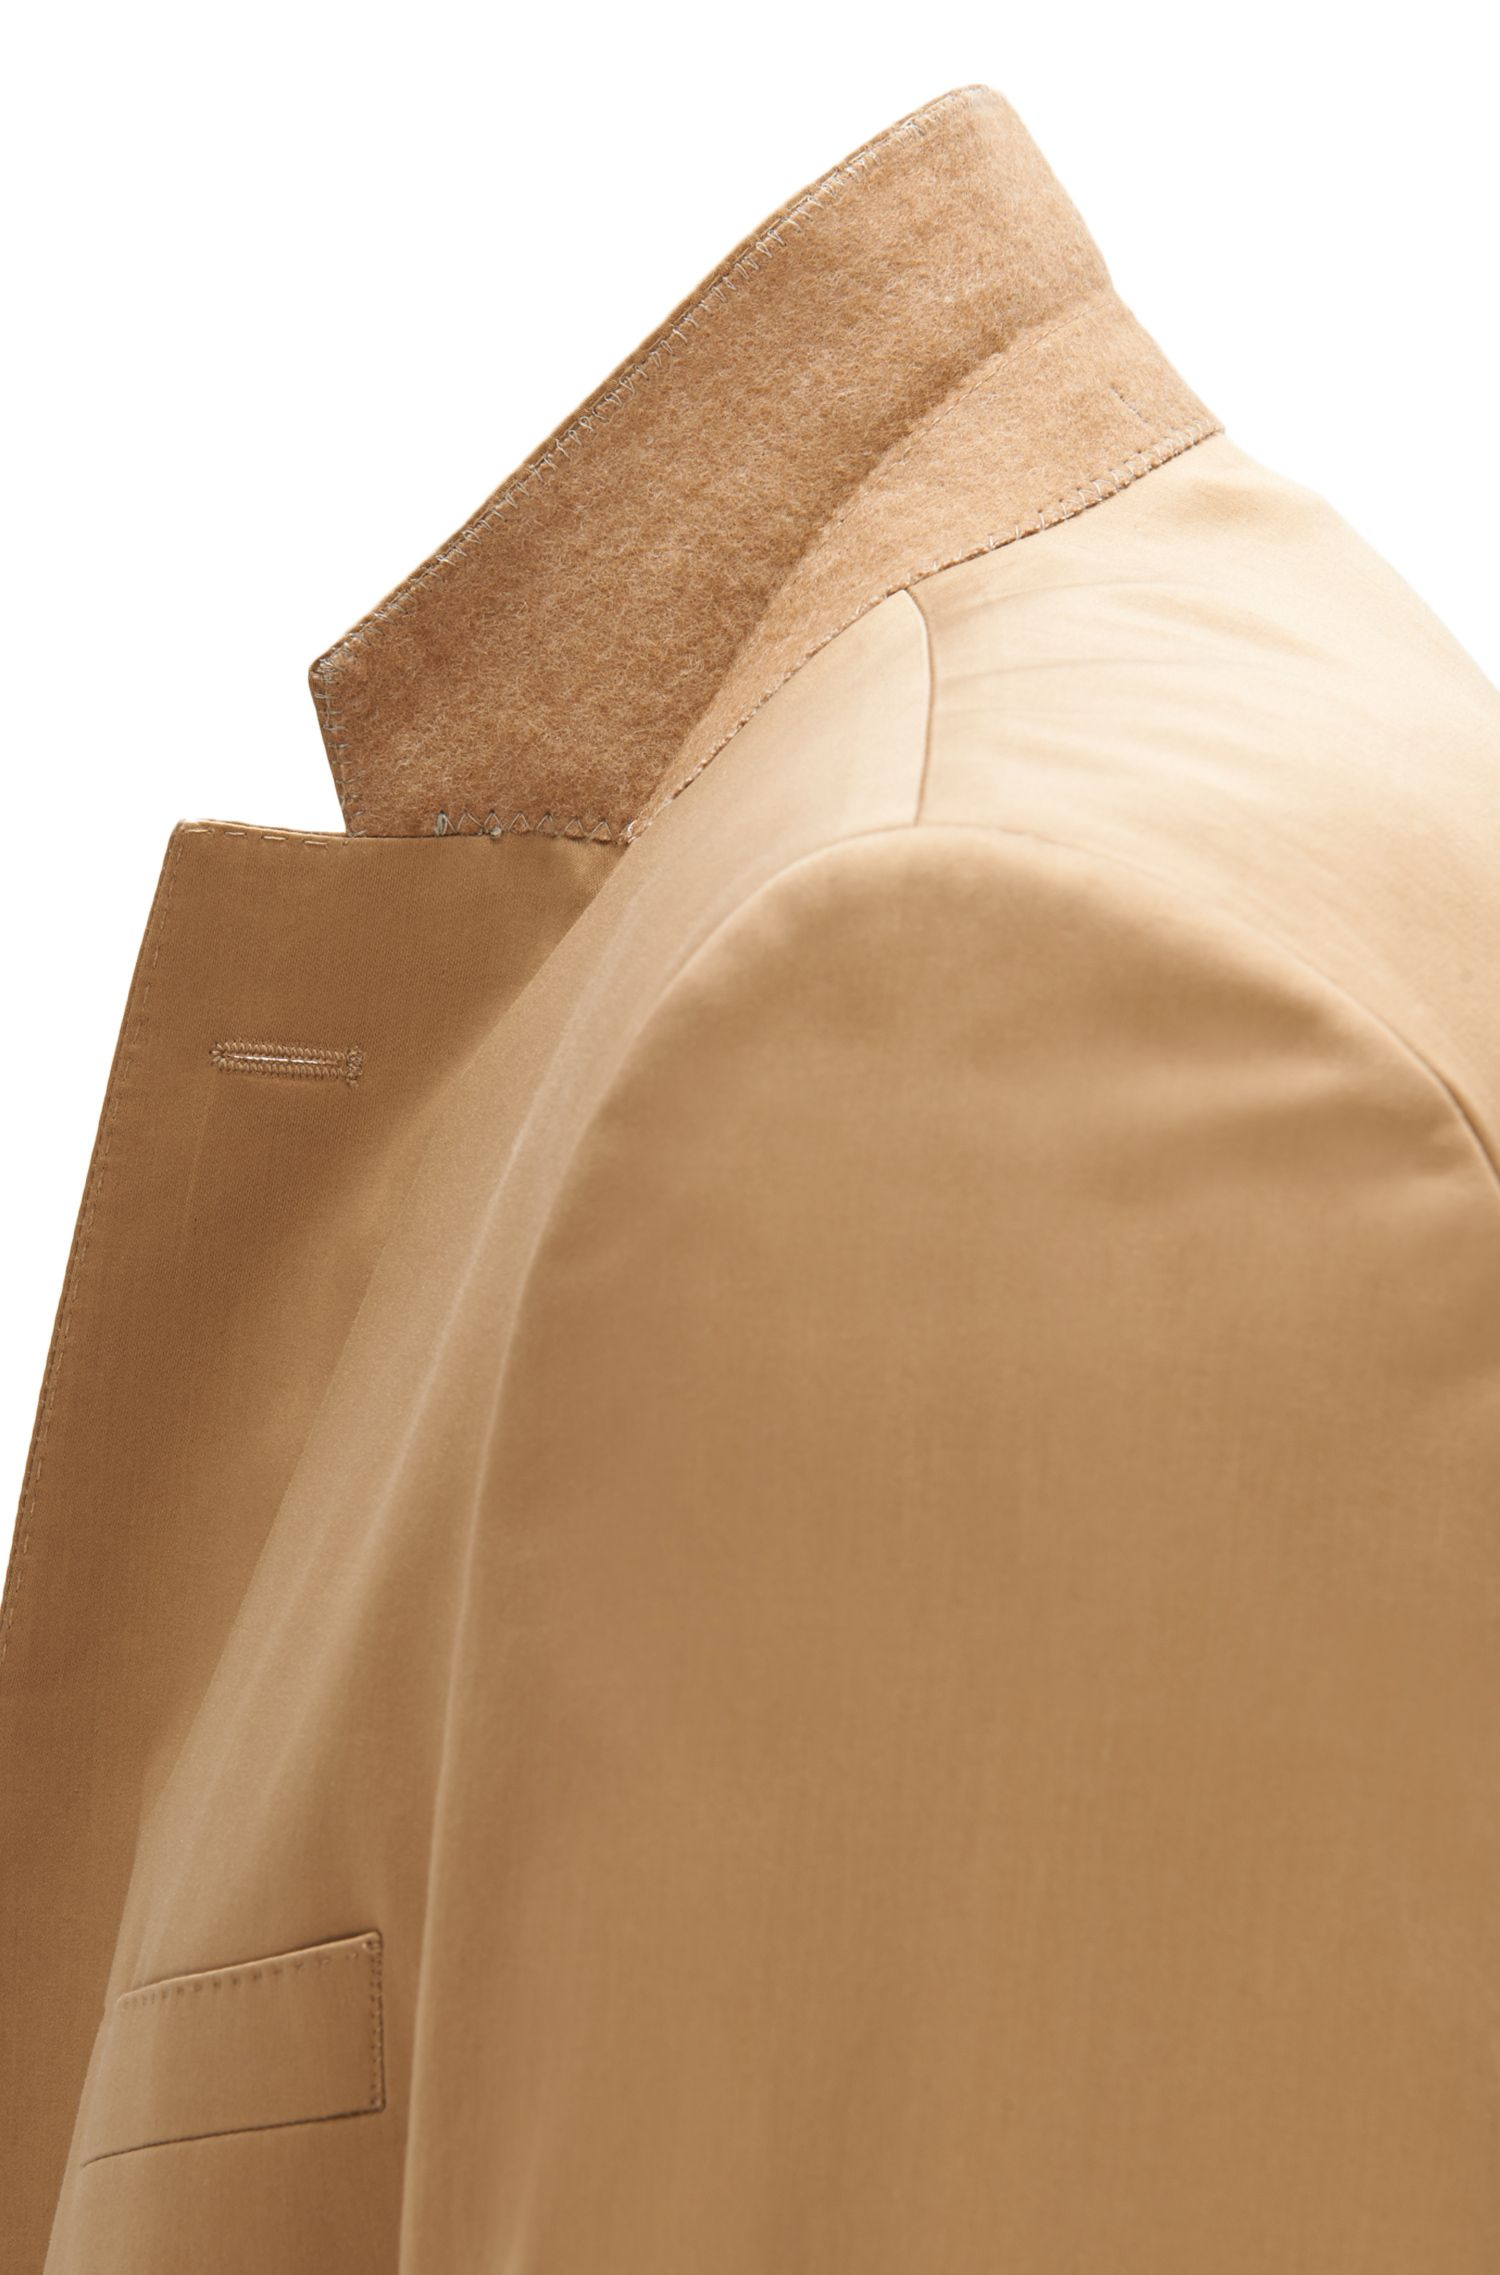 Stretch Pima Cotton Suit, Regular Fit | Jilman/Leran, Beige